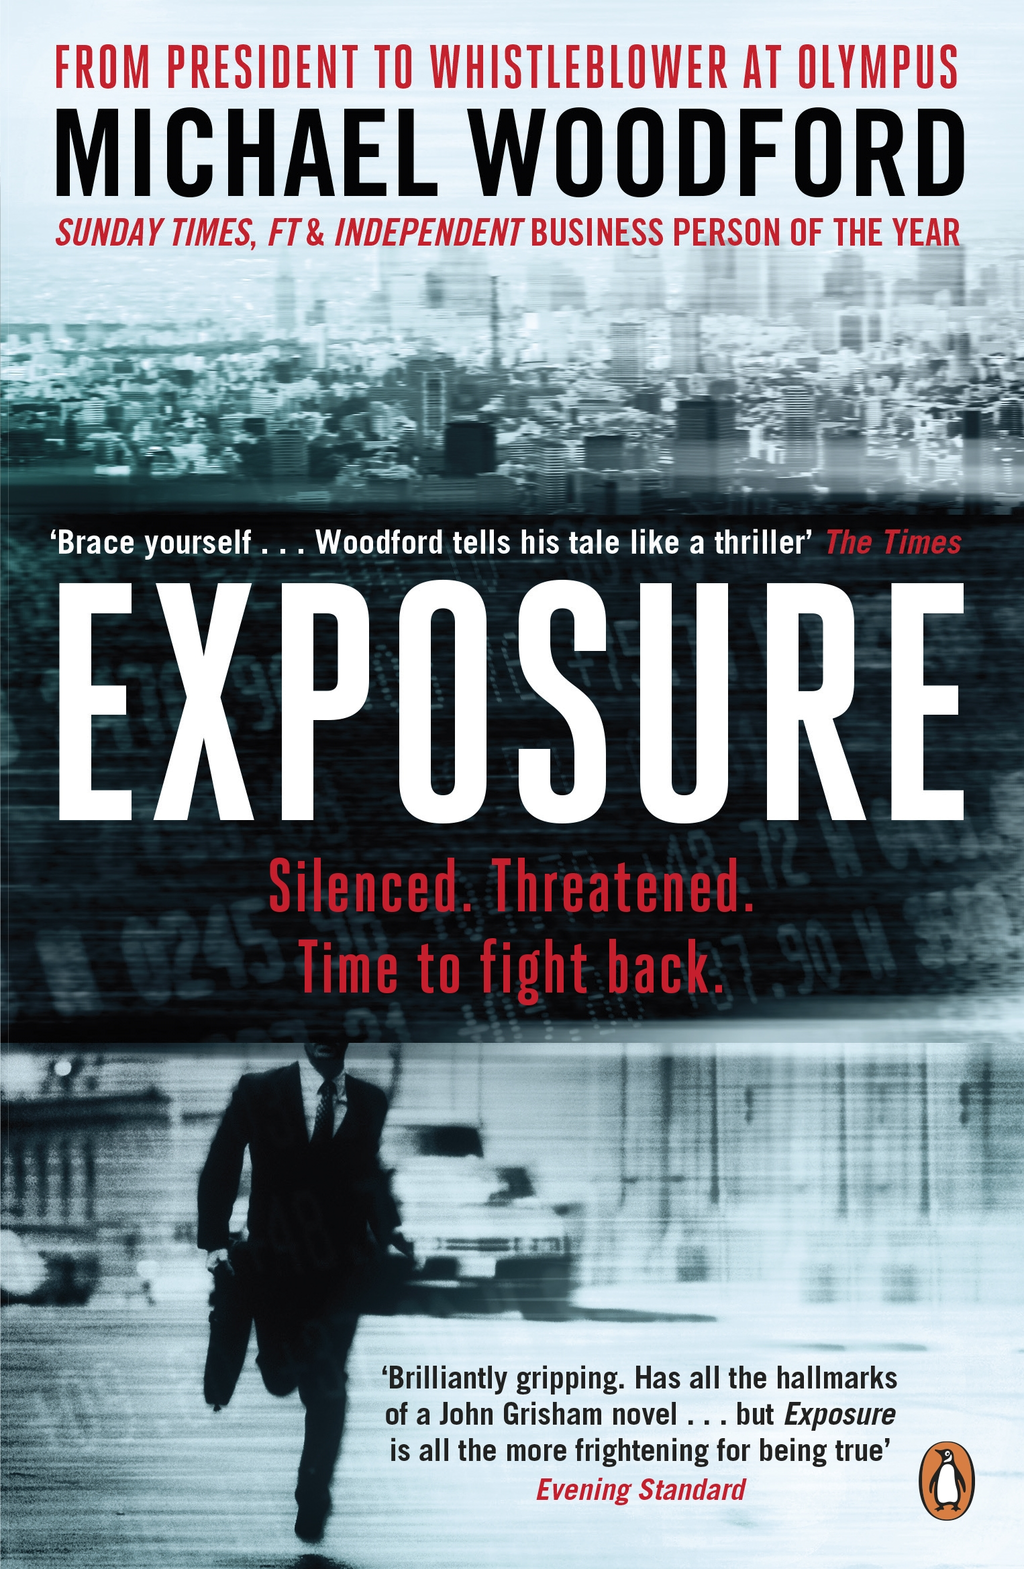 Exposure From President to Whistleblower at Olympus